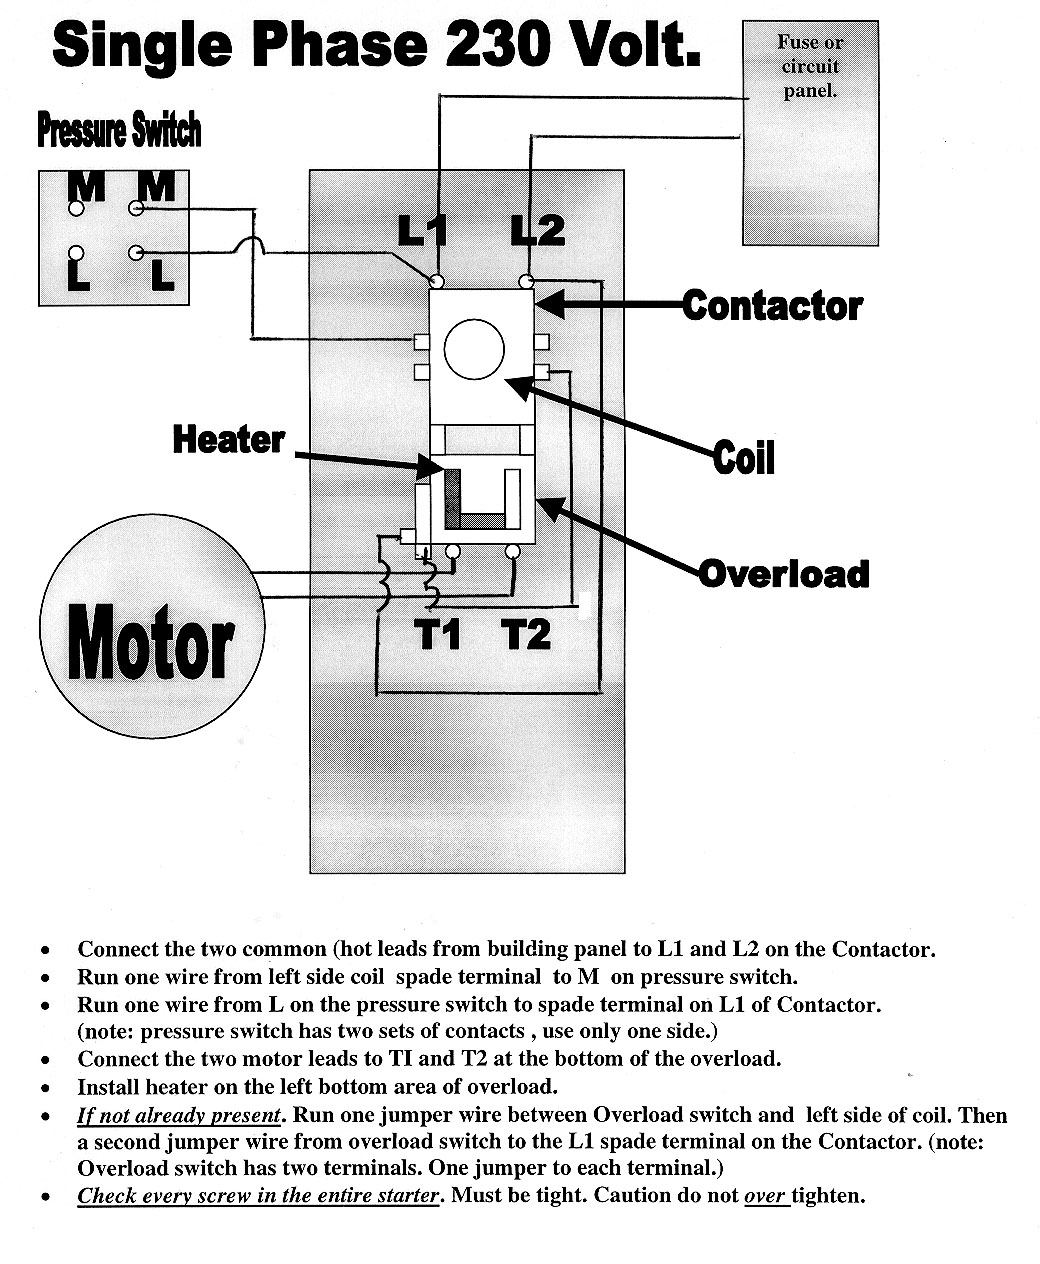 240v motor starter wiring diagram schematics wiring diagrams u2022 rh theanecdote co leeson single phase wiring diagram 480v single phase wiring diagram